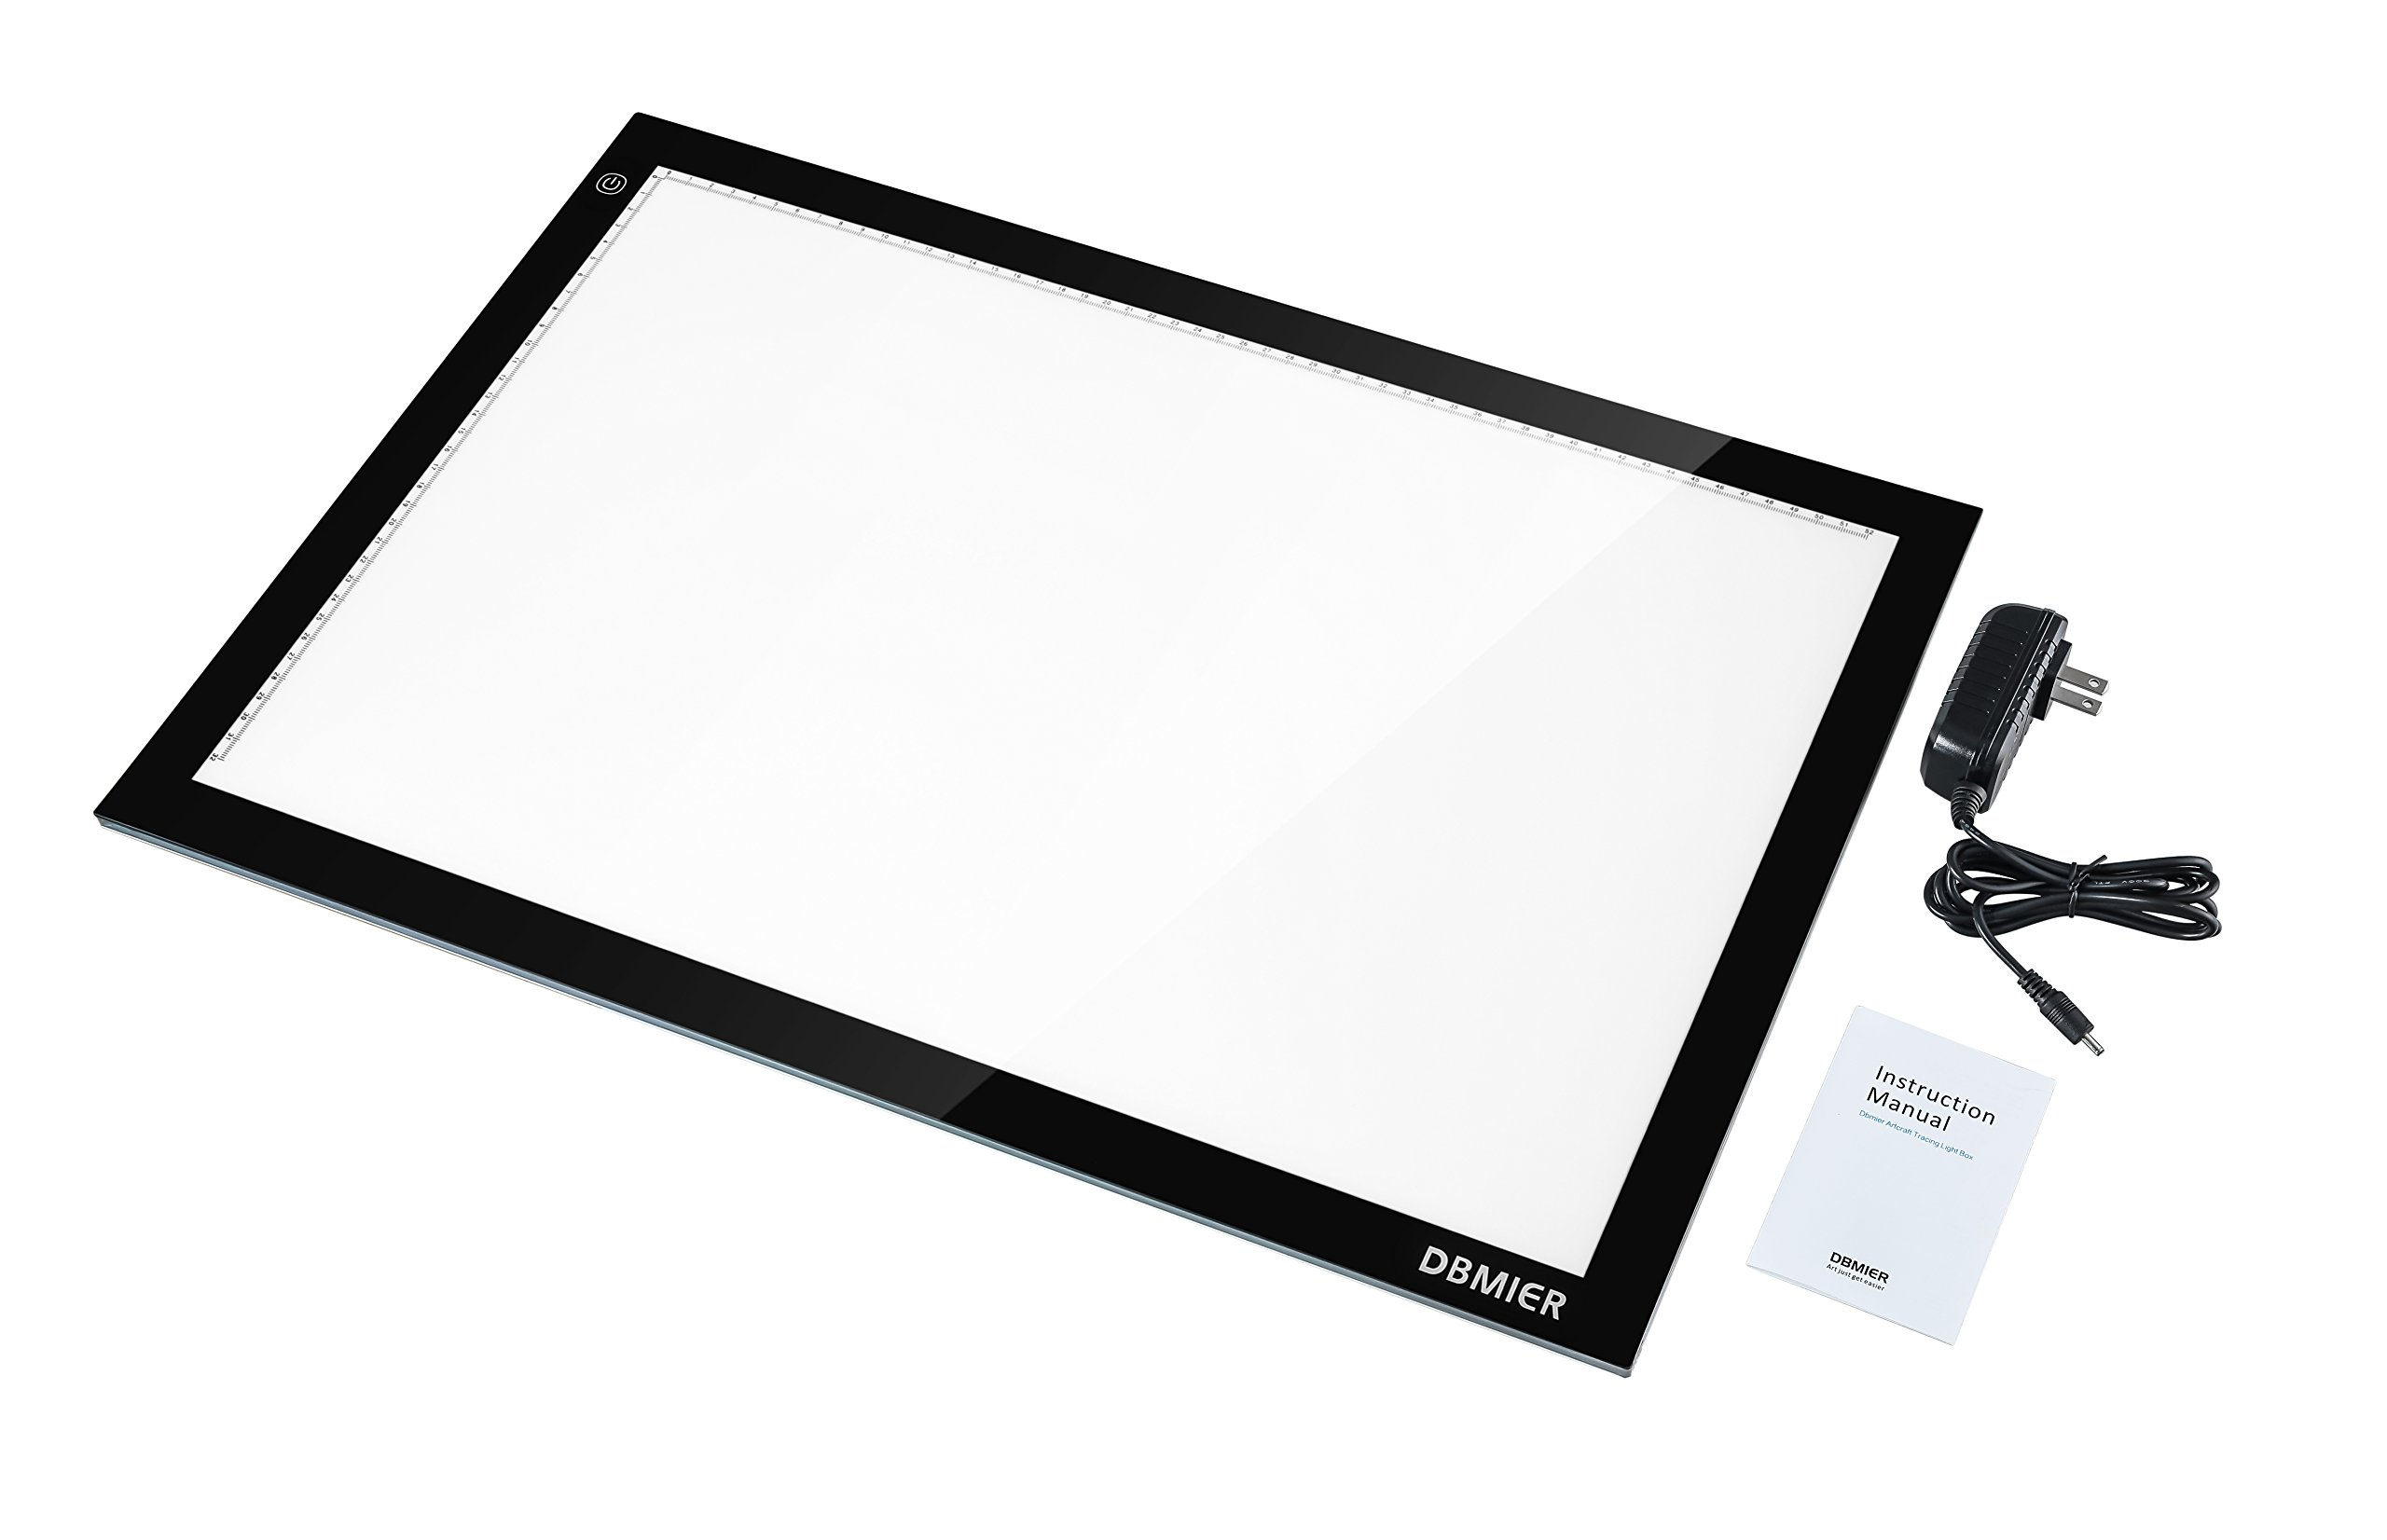 Dbmier A2 LED Ultra-thin Tracing Light Pad Adjustable Light Box - 12.60'' X 20.47'' Ideal for 2D Animation, Calligraphy, Tattoo, Sketching & Drawing, Stained Glass, Quilting, Editing Negatives